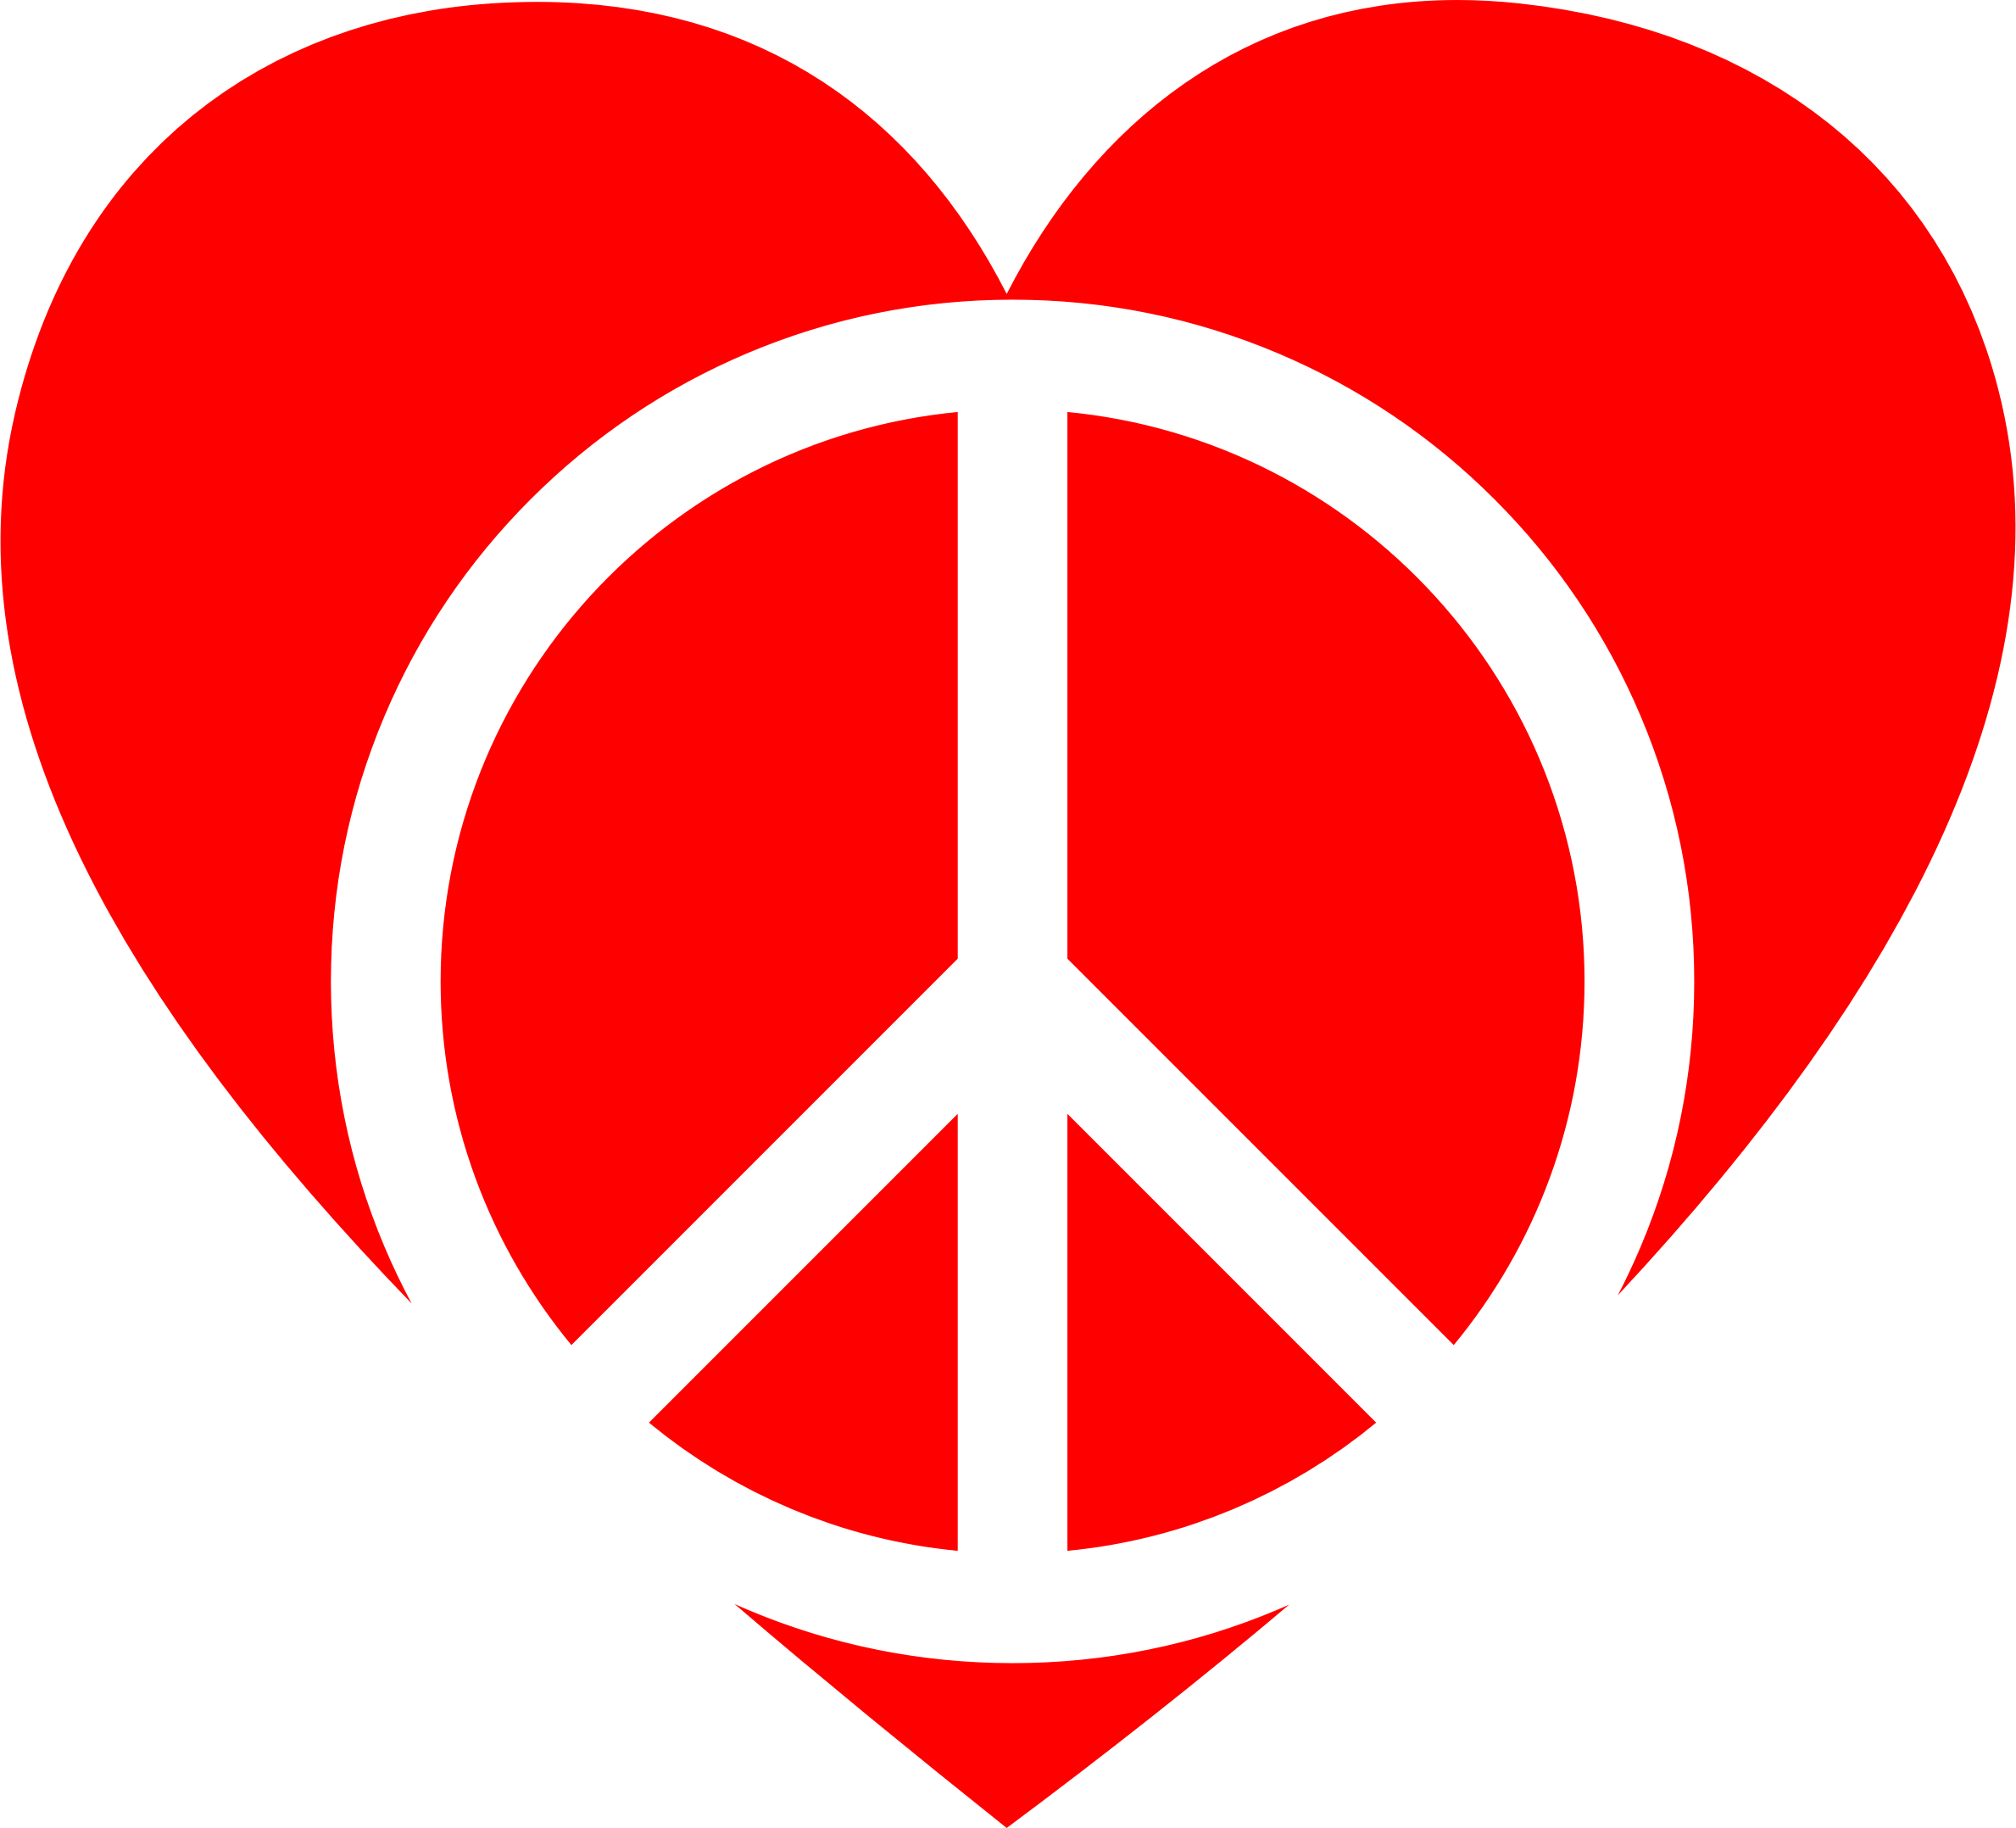 Peace clipart peace sign. Red heart big image